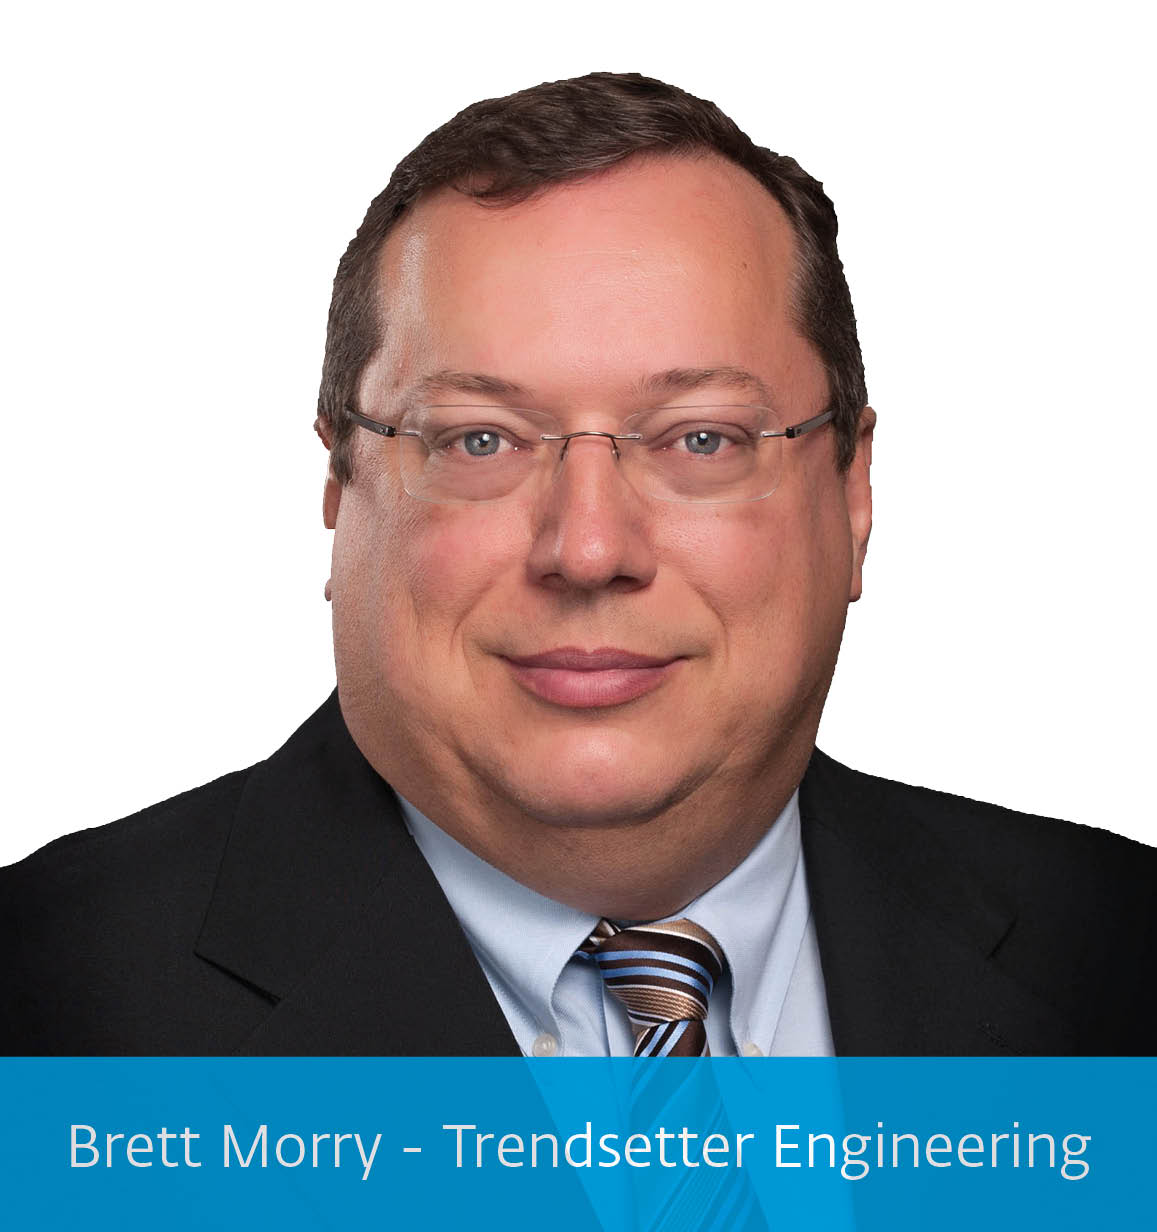 Brett Morry - Trendsetter Engineering